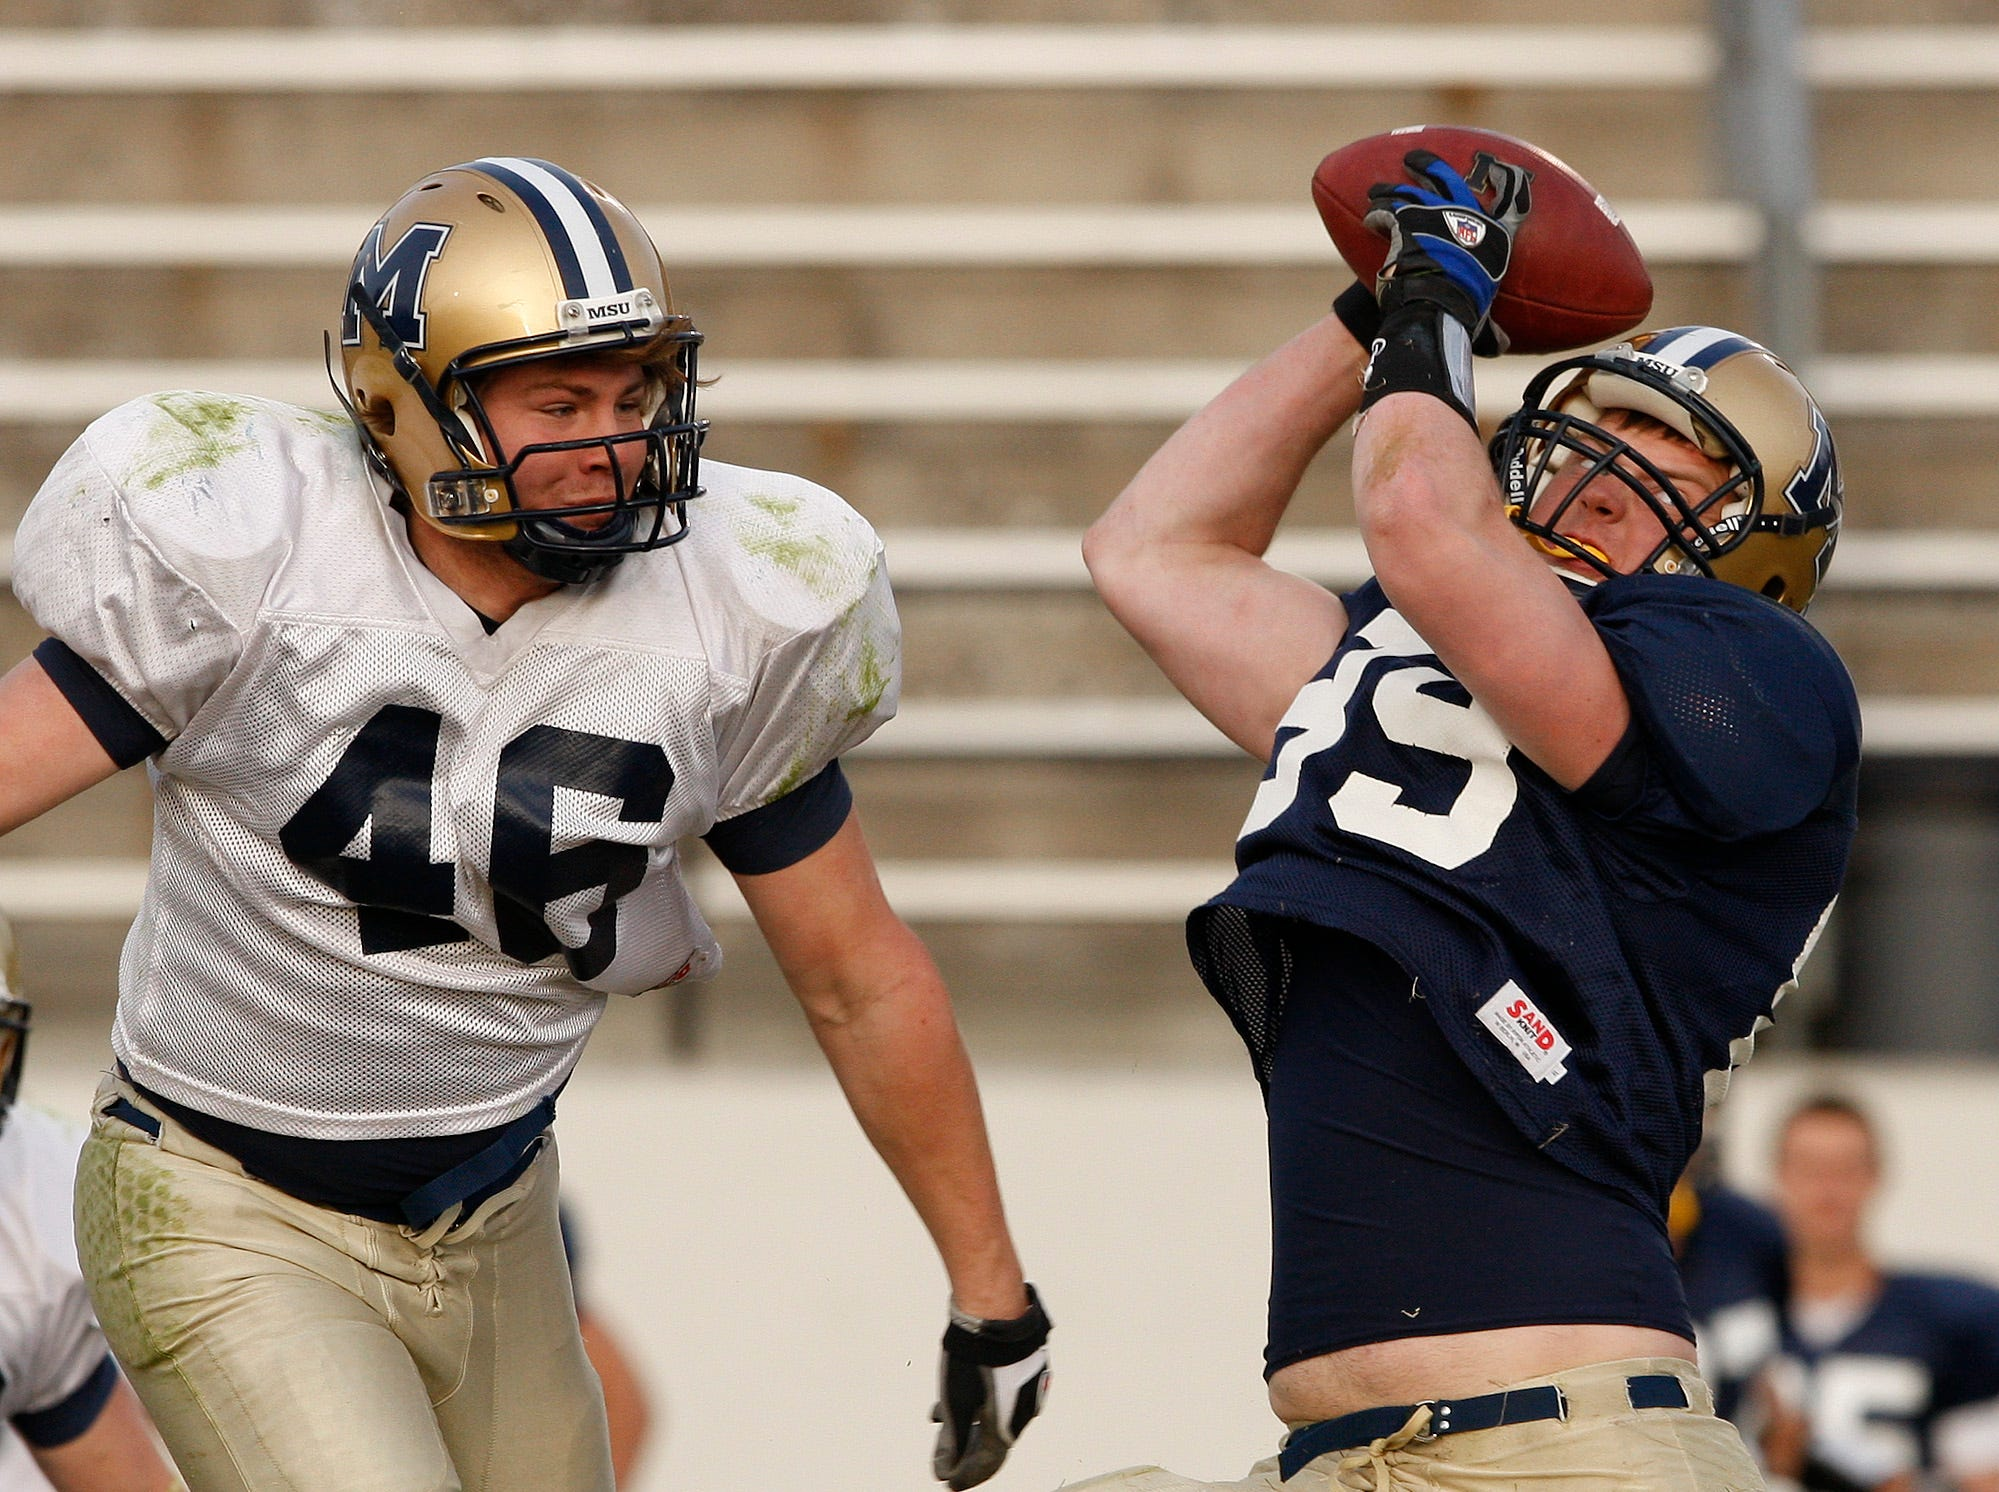 Tribune Photo/Larry BecknerBobcat tight end Steven Foster catches a third quarter pass as Ryan D'Agostino defends during the Triangle Classic Spring Game at Memorial Stadium Saturday night.